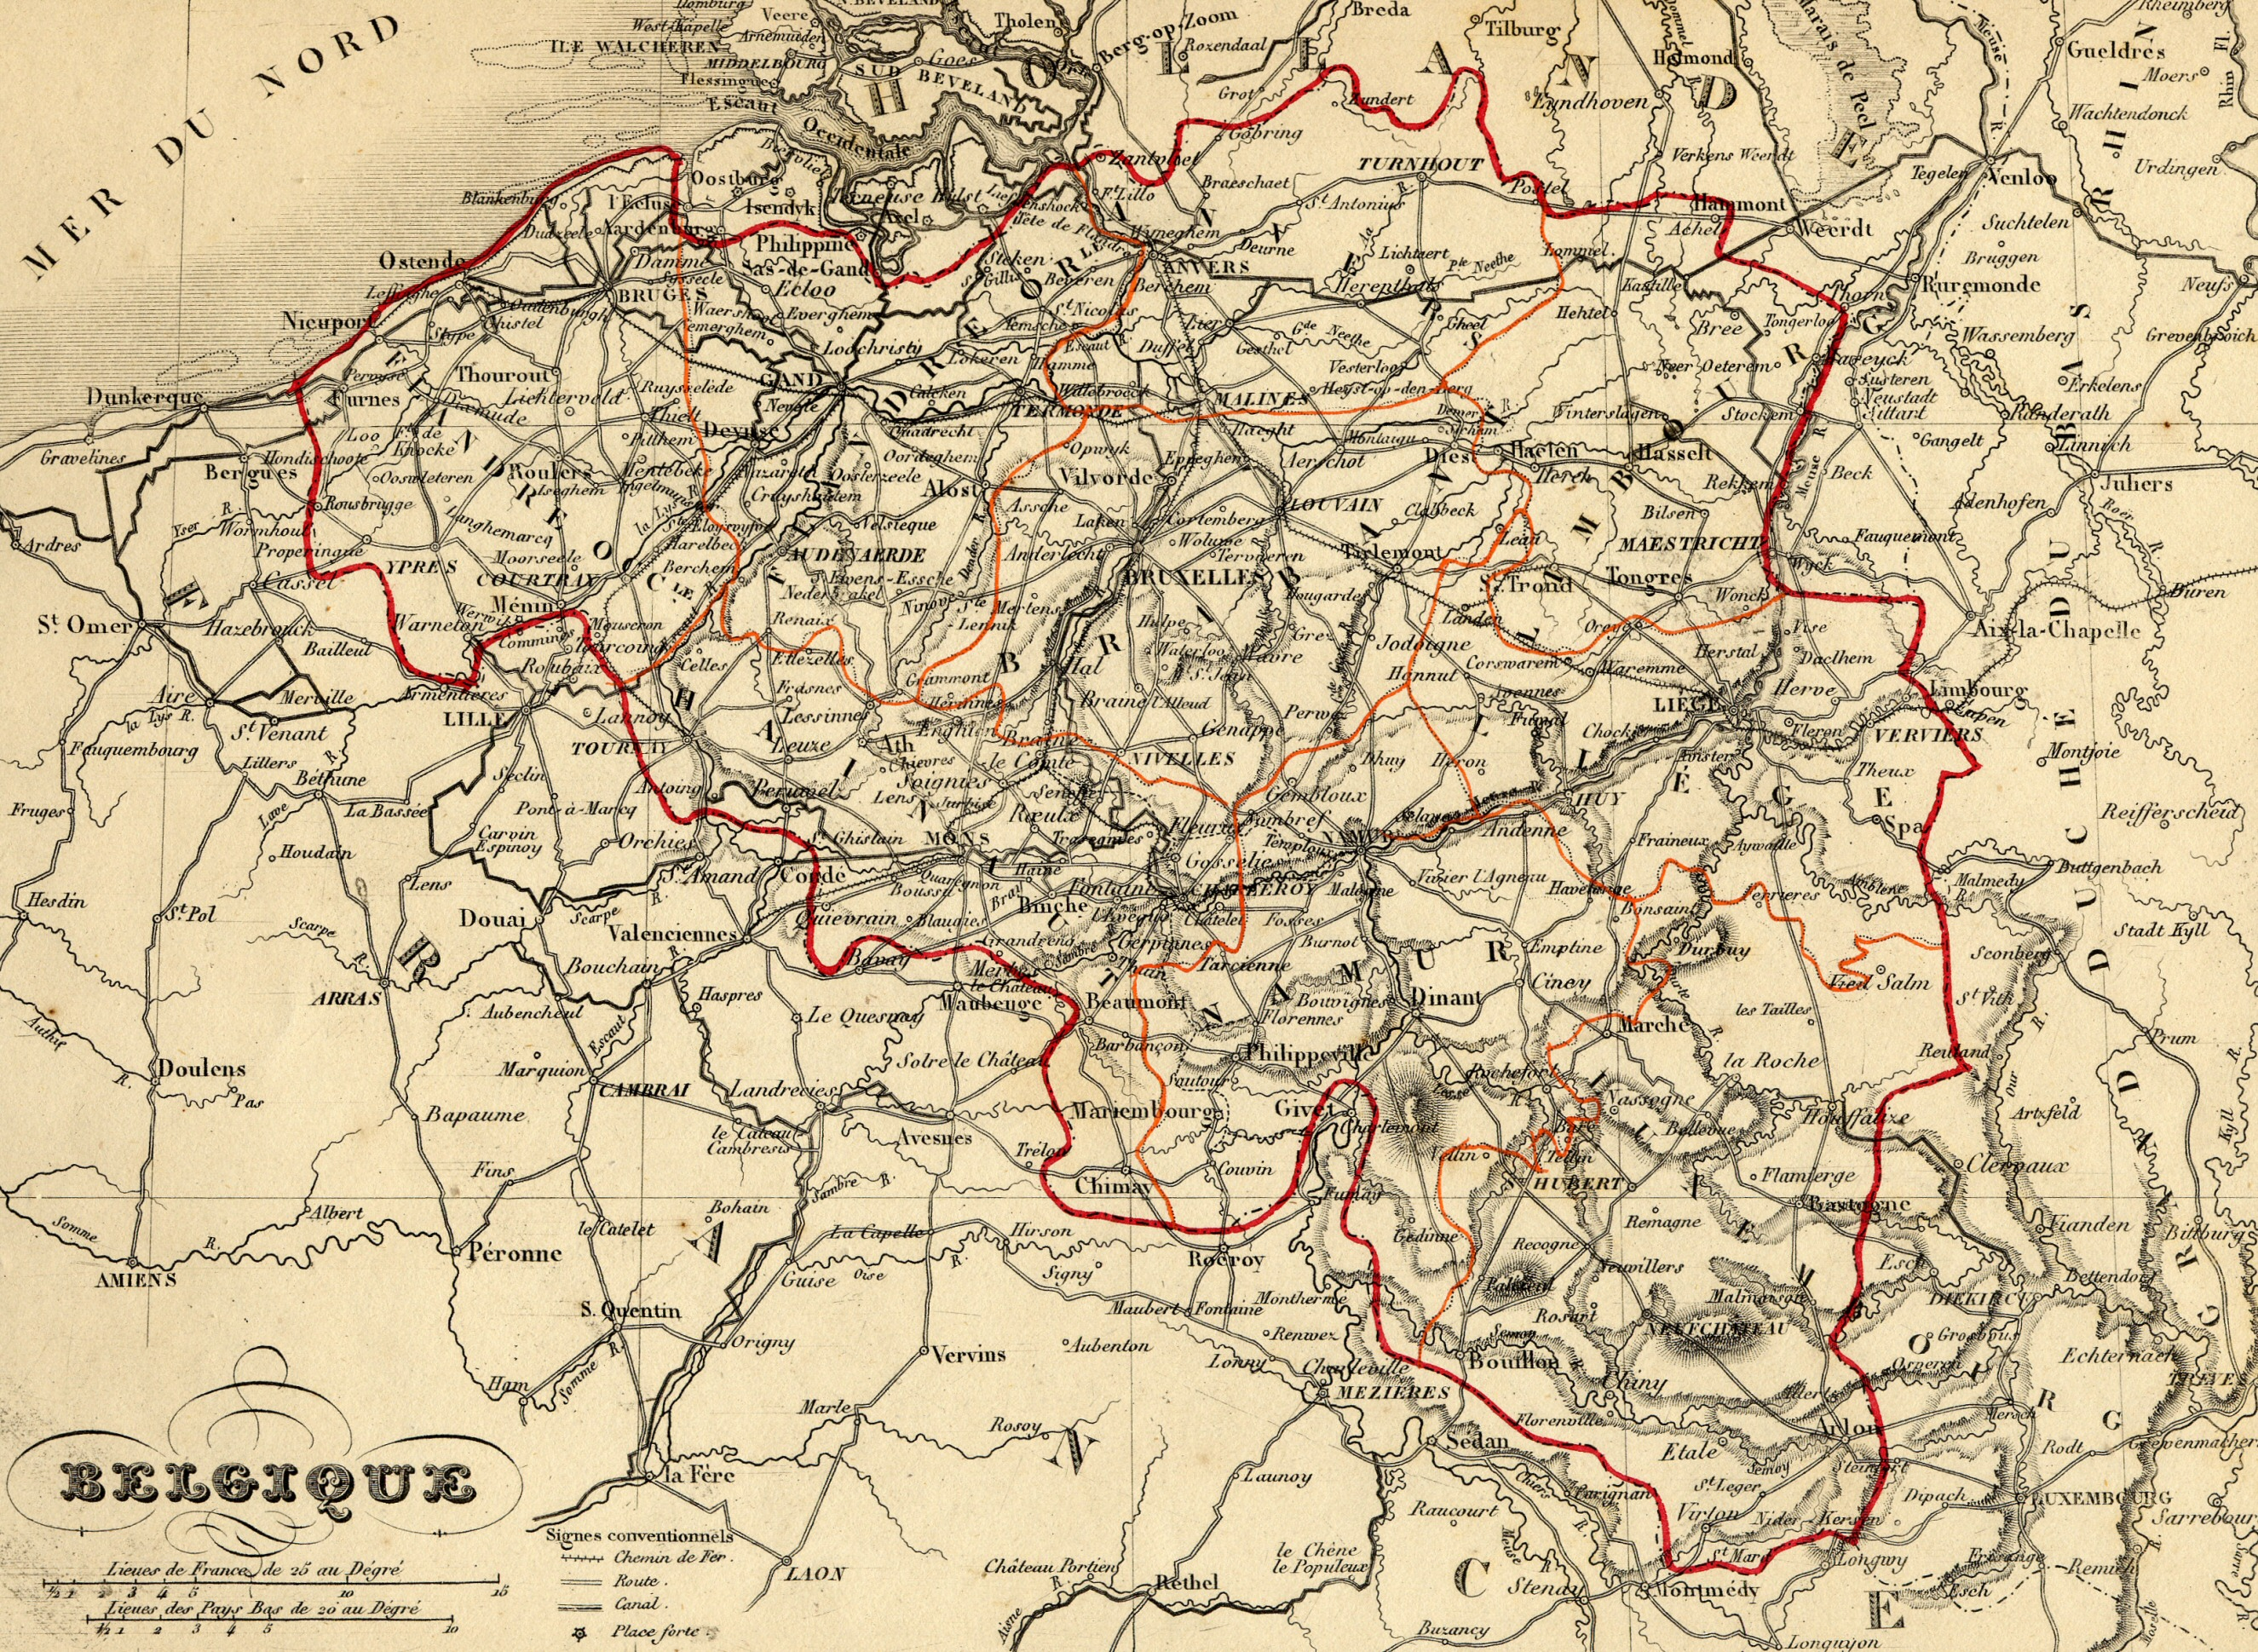 Description carte belgique 1843